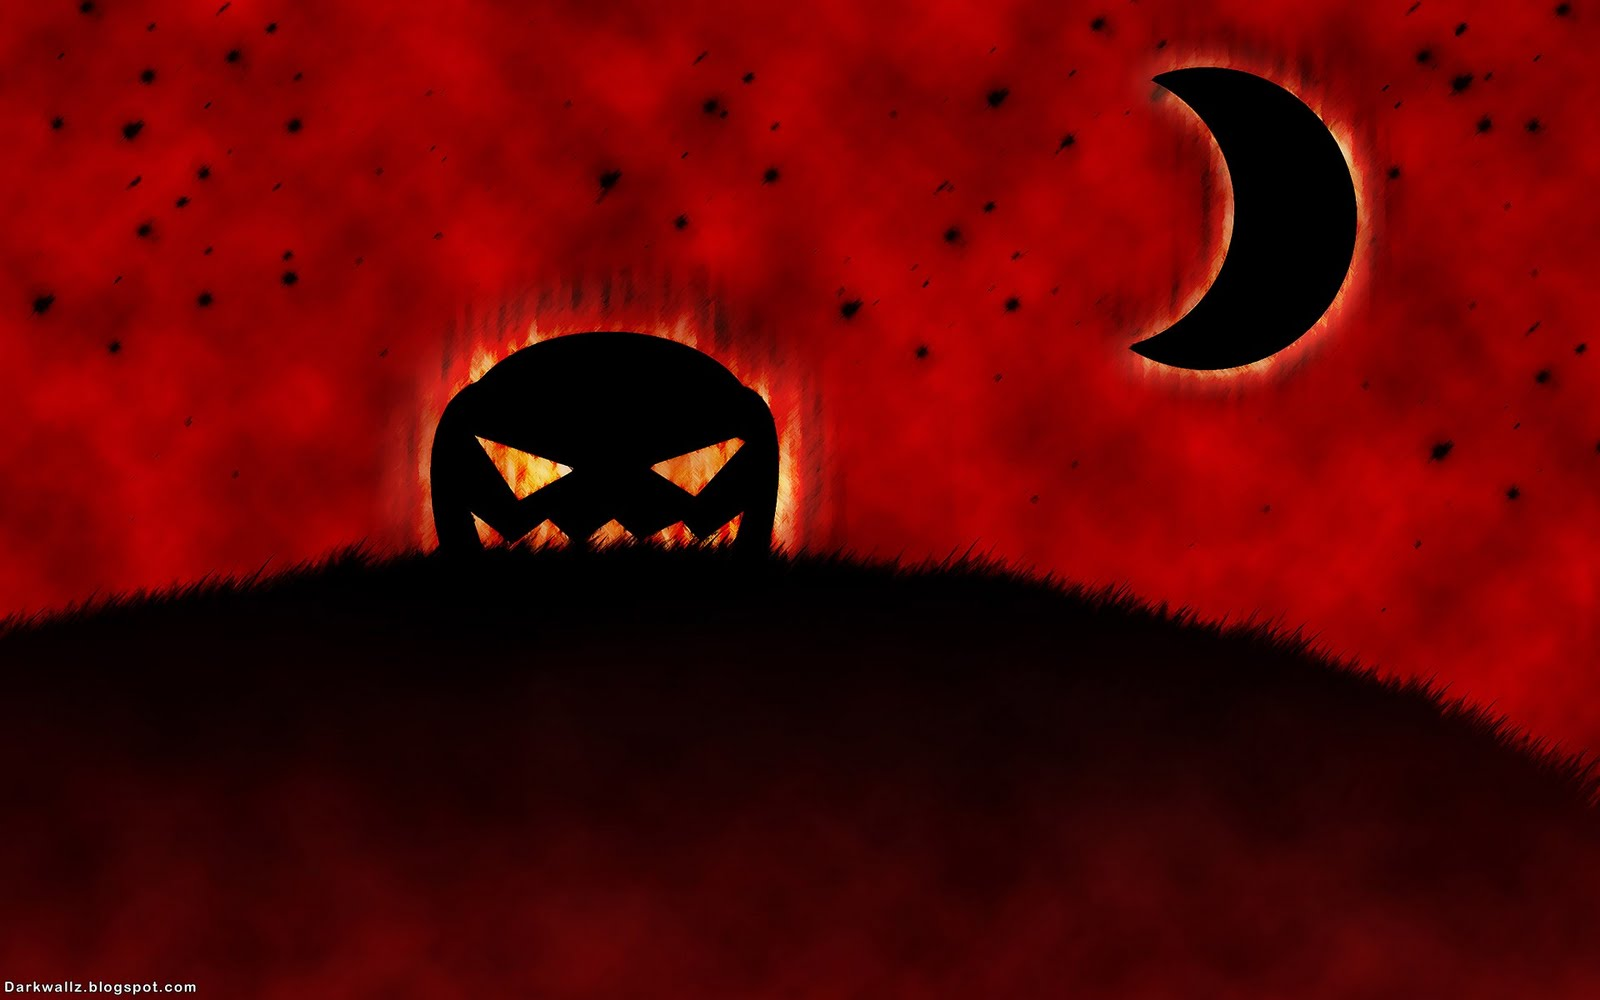 Halloween Wallpapers 14 | Dark Wallpaper Download